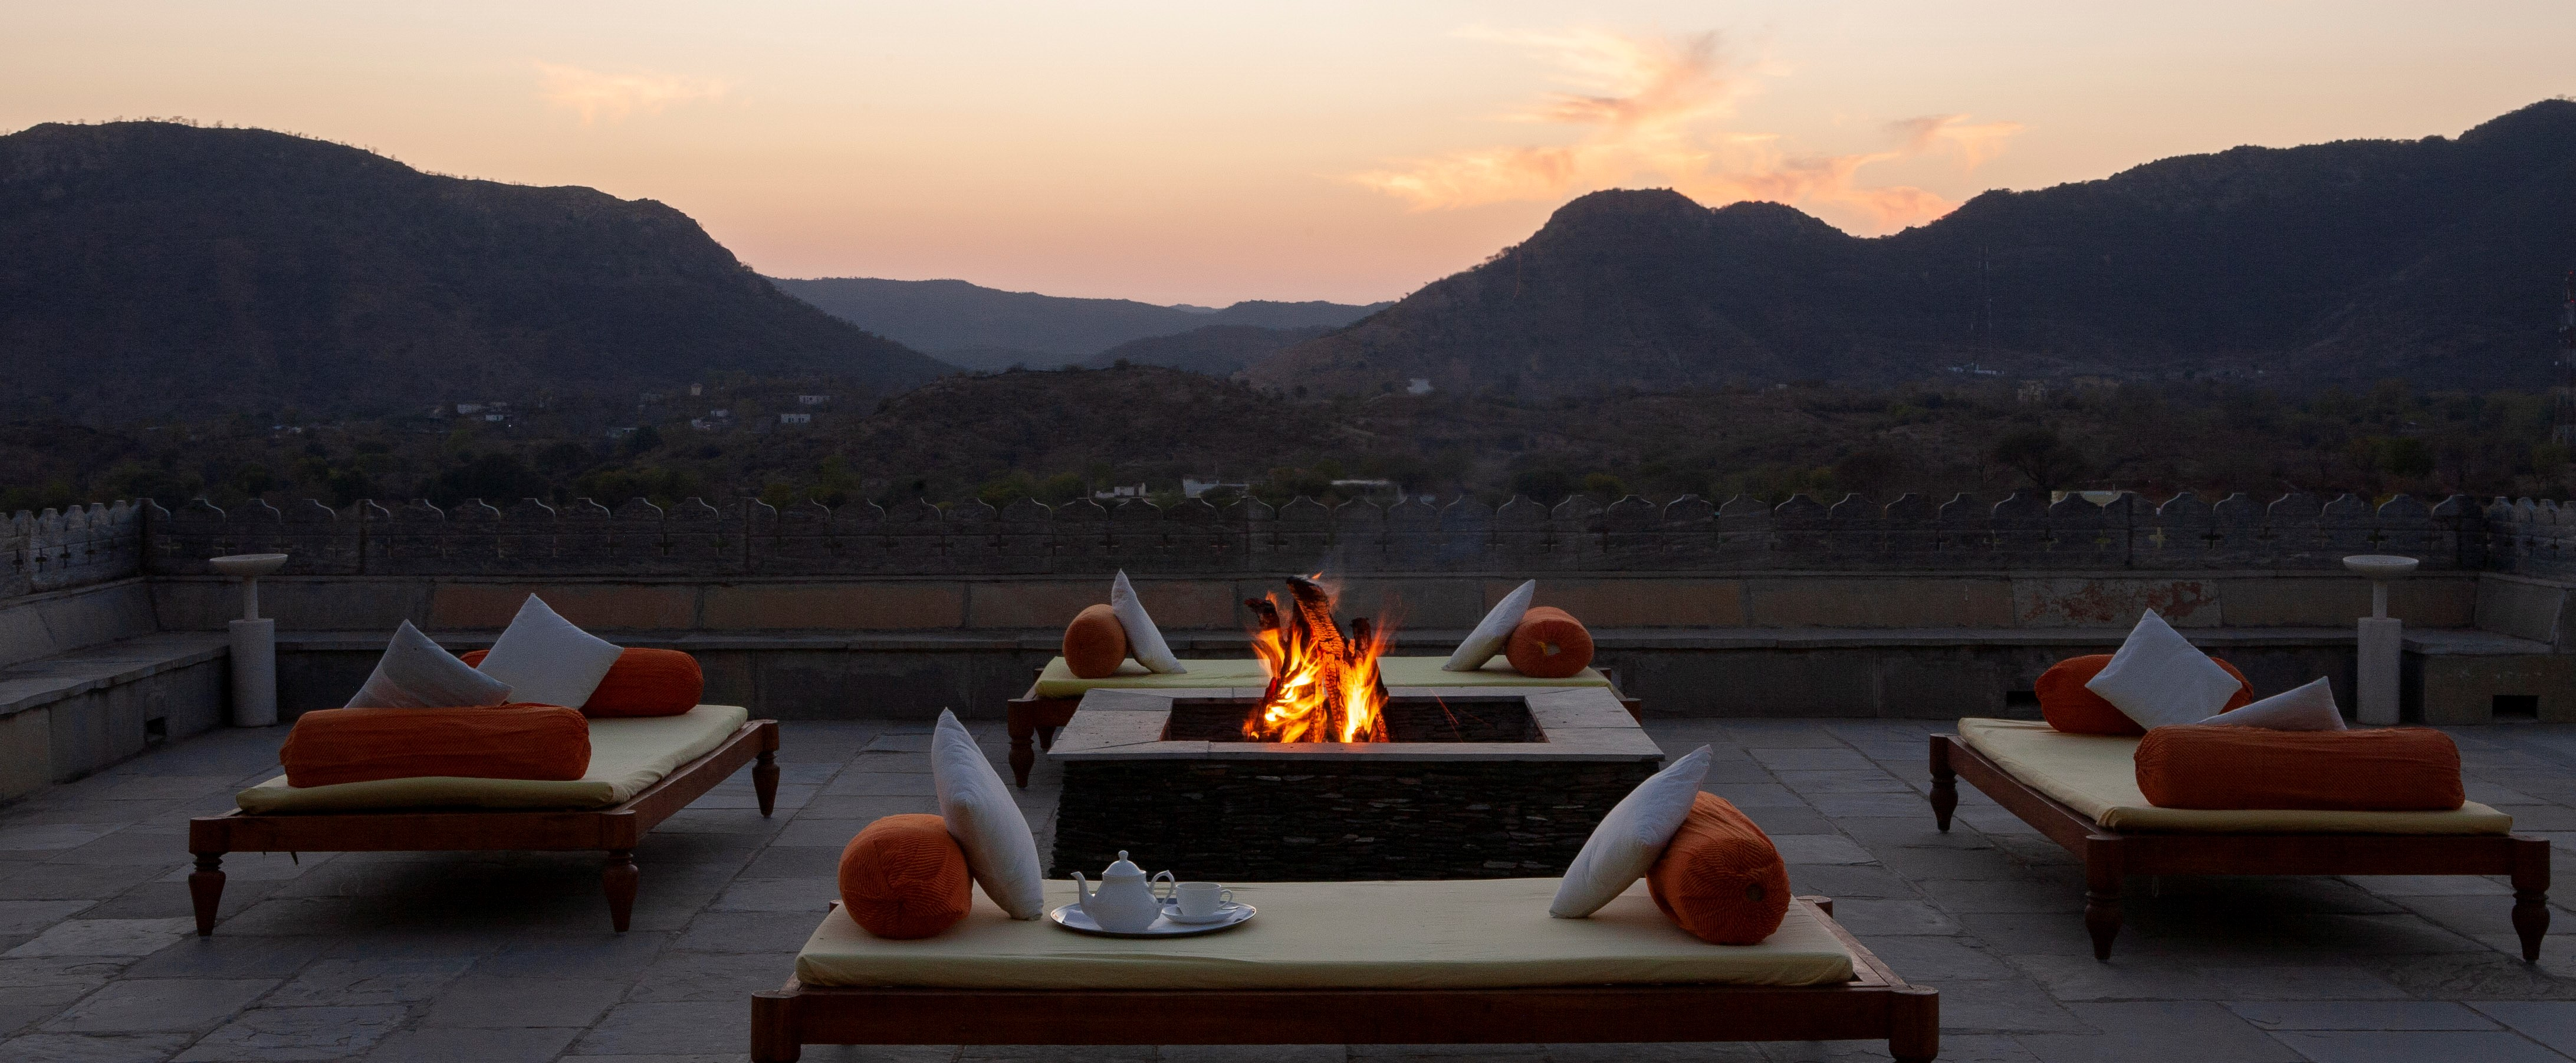 raas-devigarh-terrace-sunset